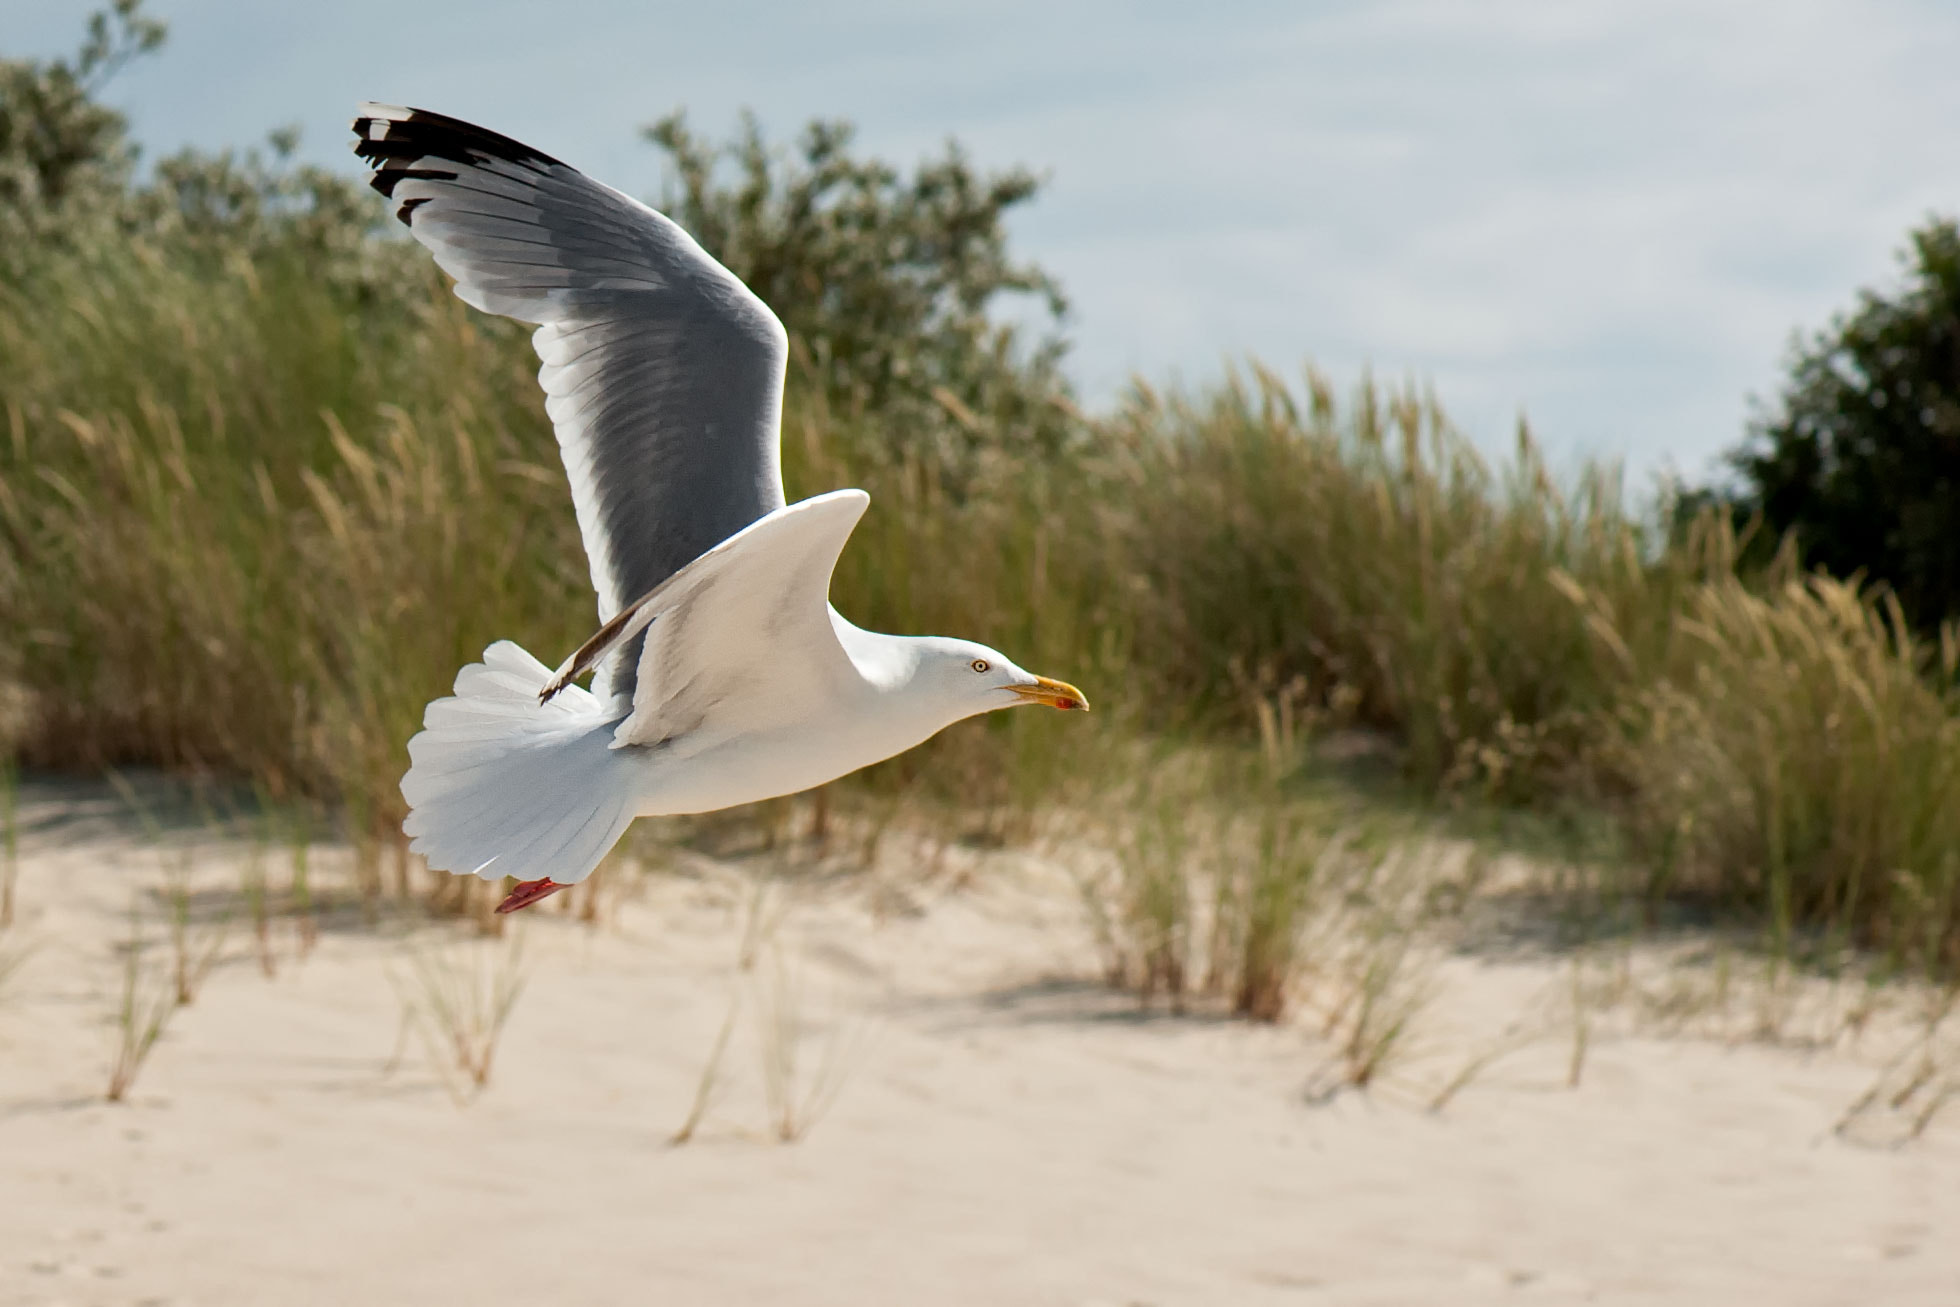 Photograph Fliegende Möwe am Strand | Flying seagull on the beach by Franz Engels on 500px